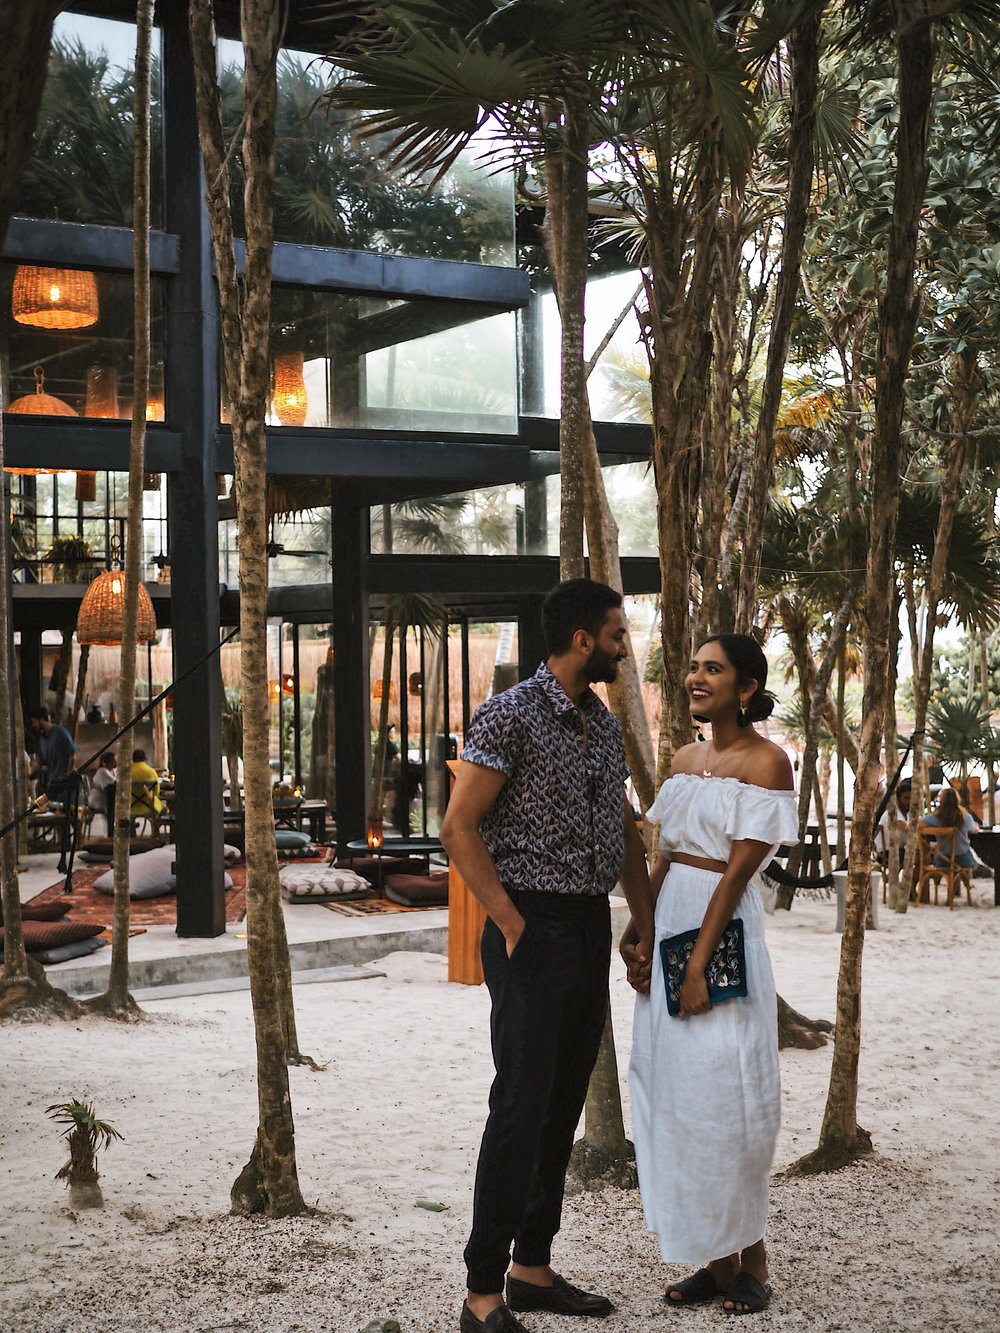 Copy of Habitas Tulum (Moro Restaurant)